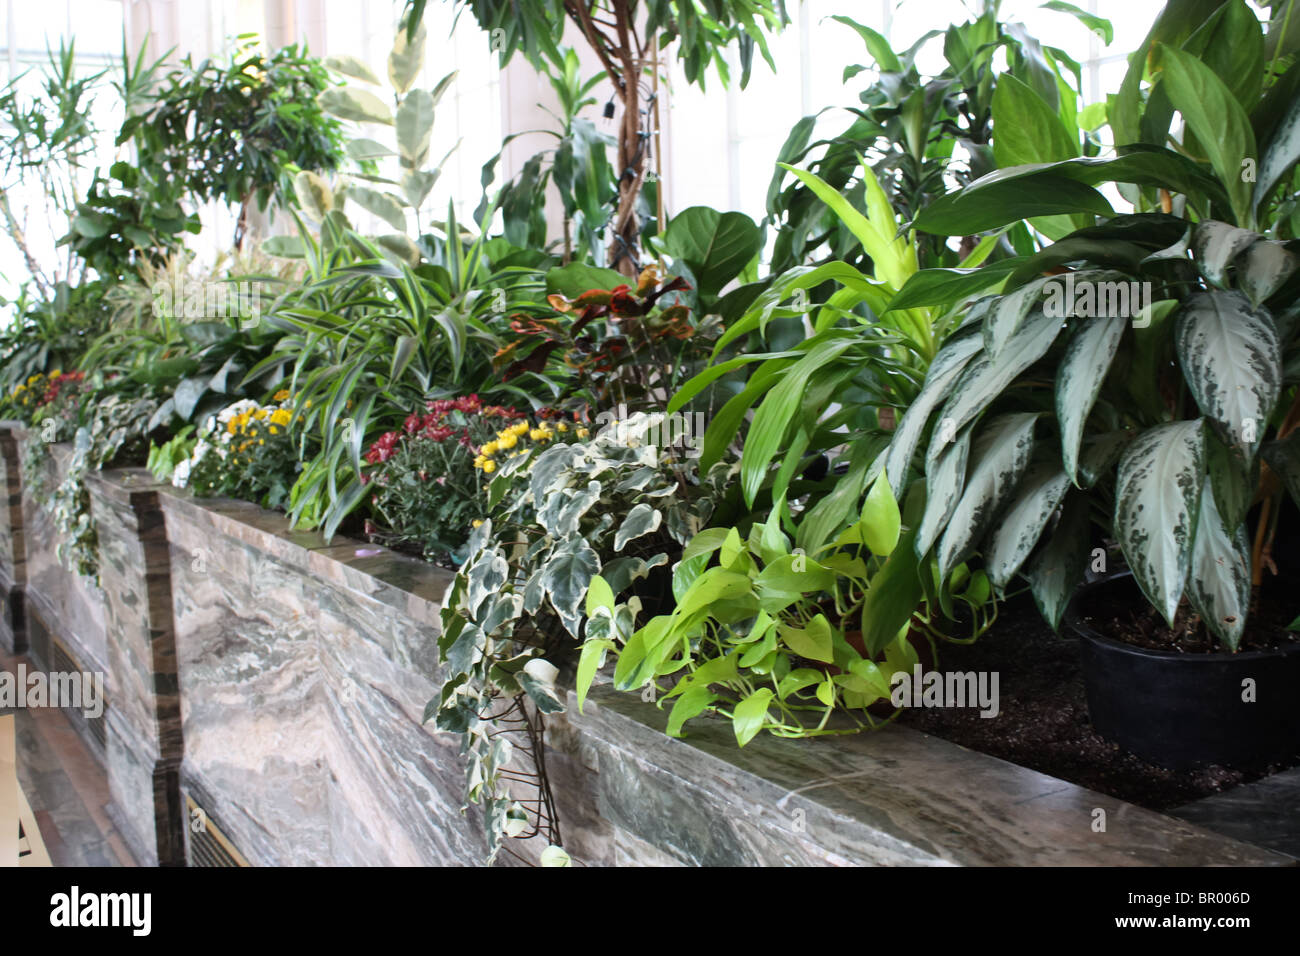 Awe Inspiring Green Plants Indoor Garden Greenhouse Palm Room Stock Photo Complete Home Design Collection Barbaintelli Responsecom